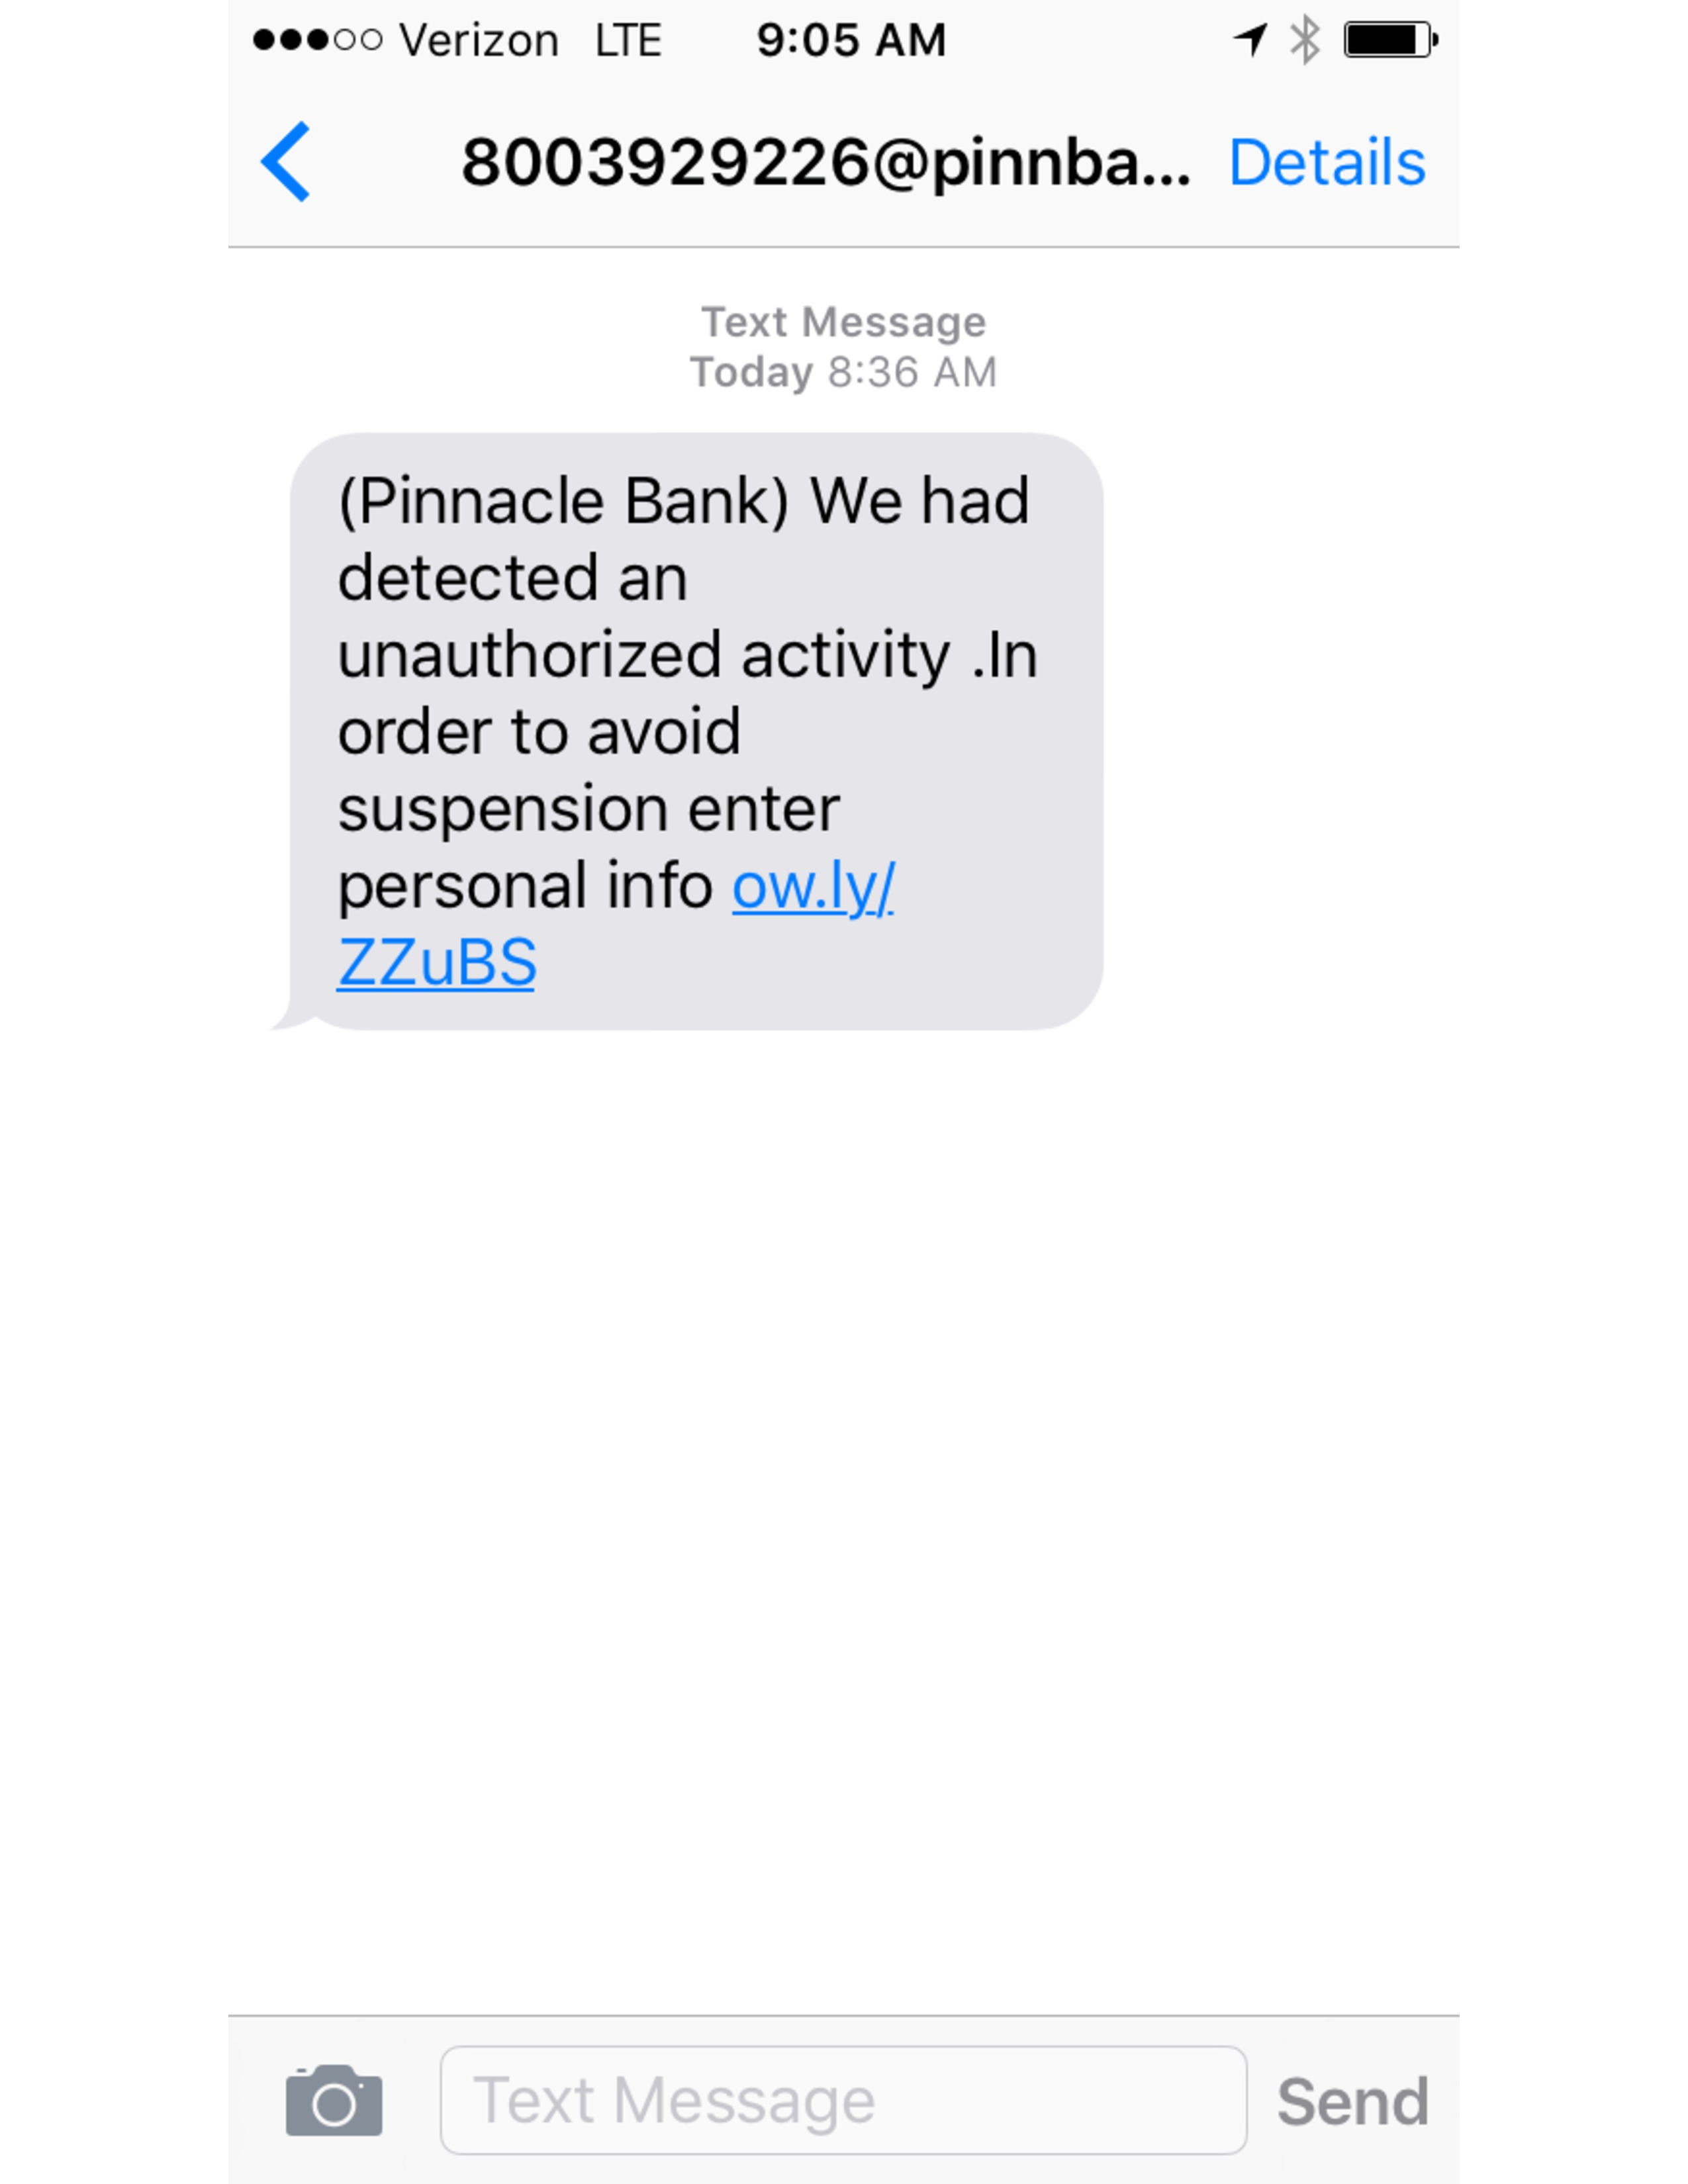 Courtesy nebraska attorney general s office text message scam image